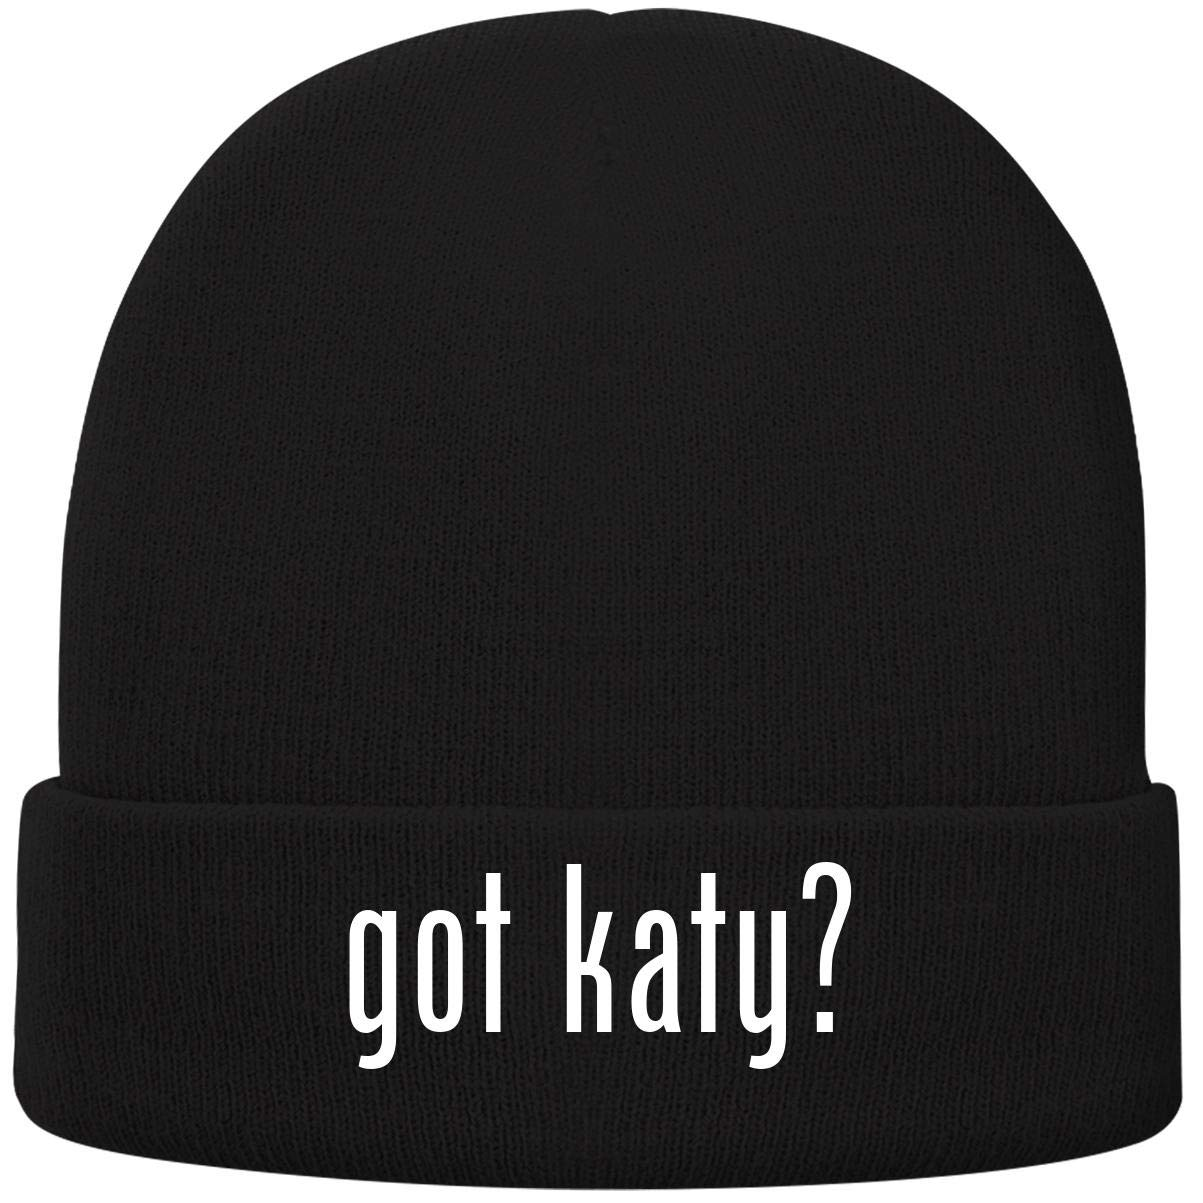 One Legging it Around got Katy? - Soft Adult Beanie Cap